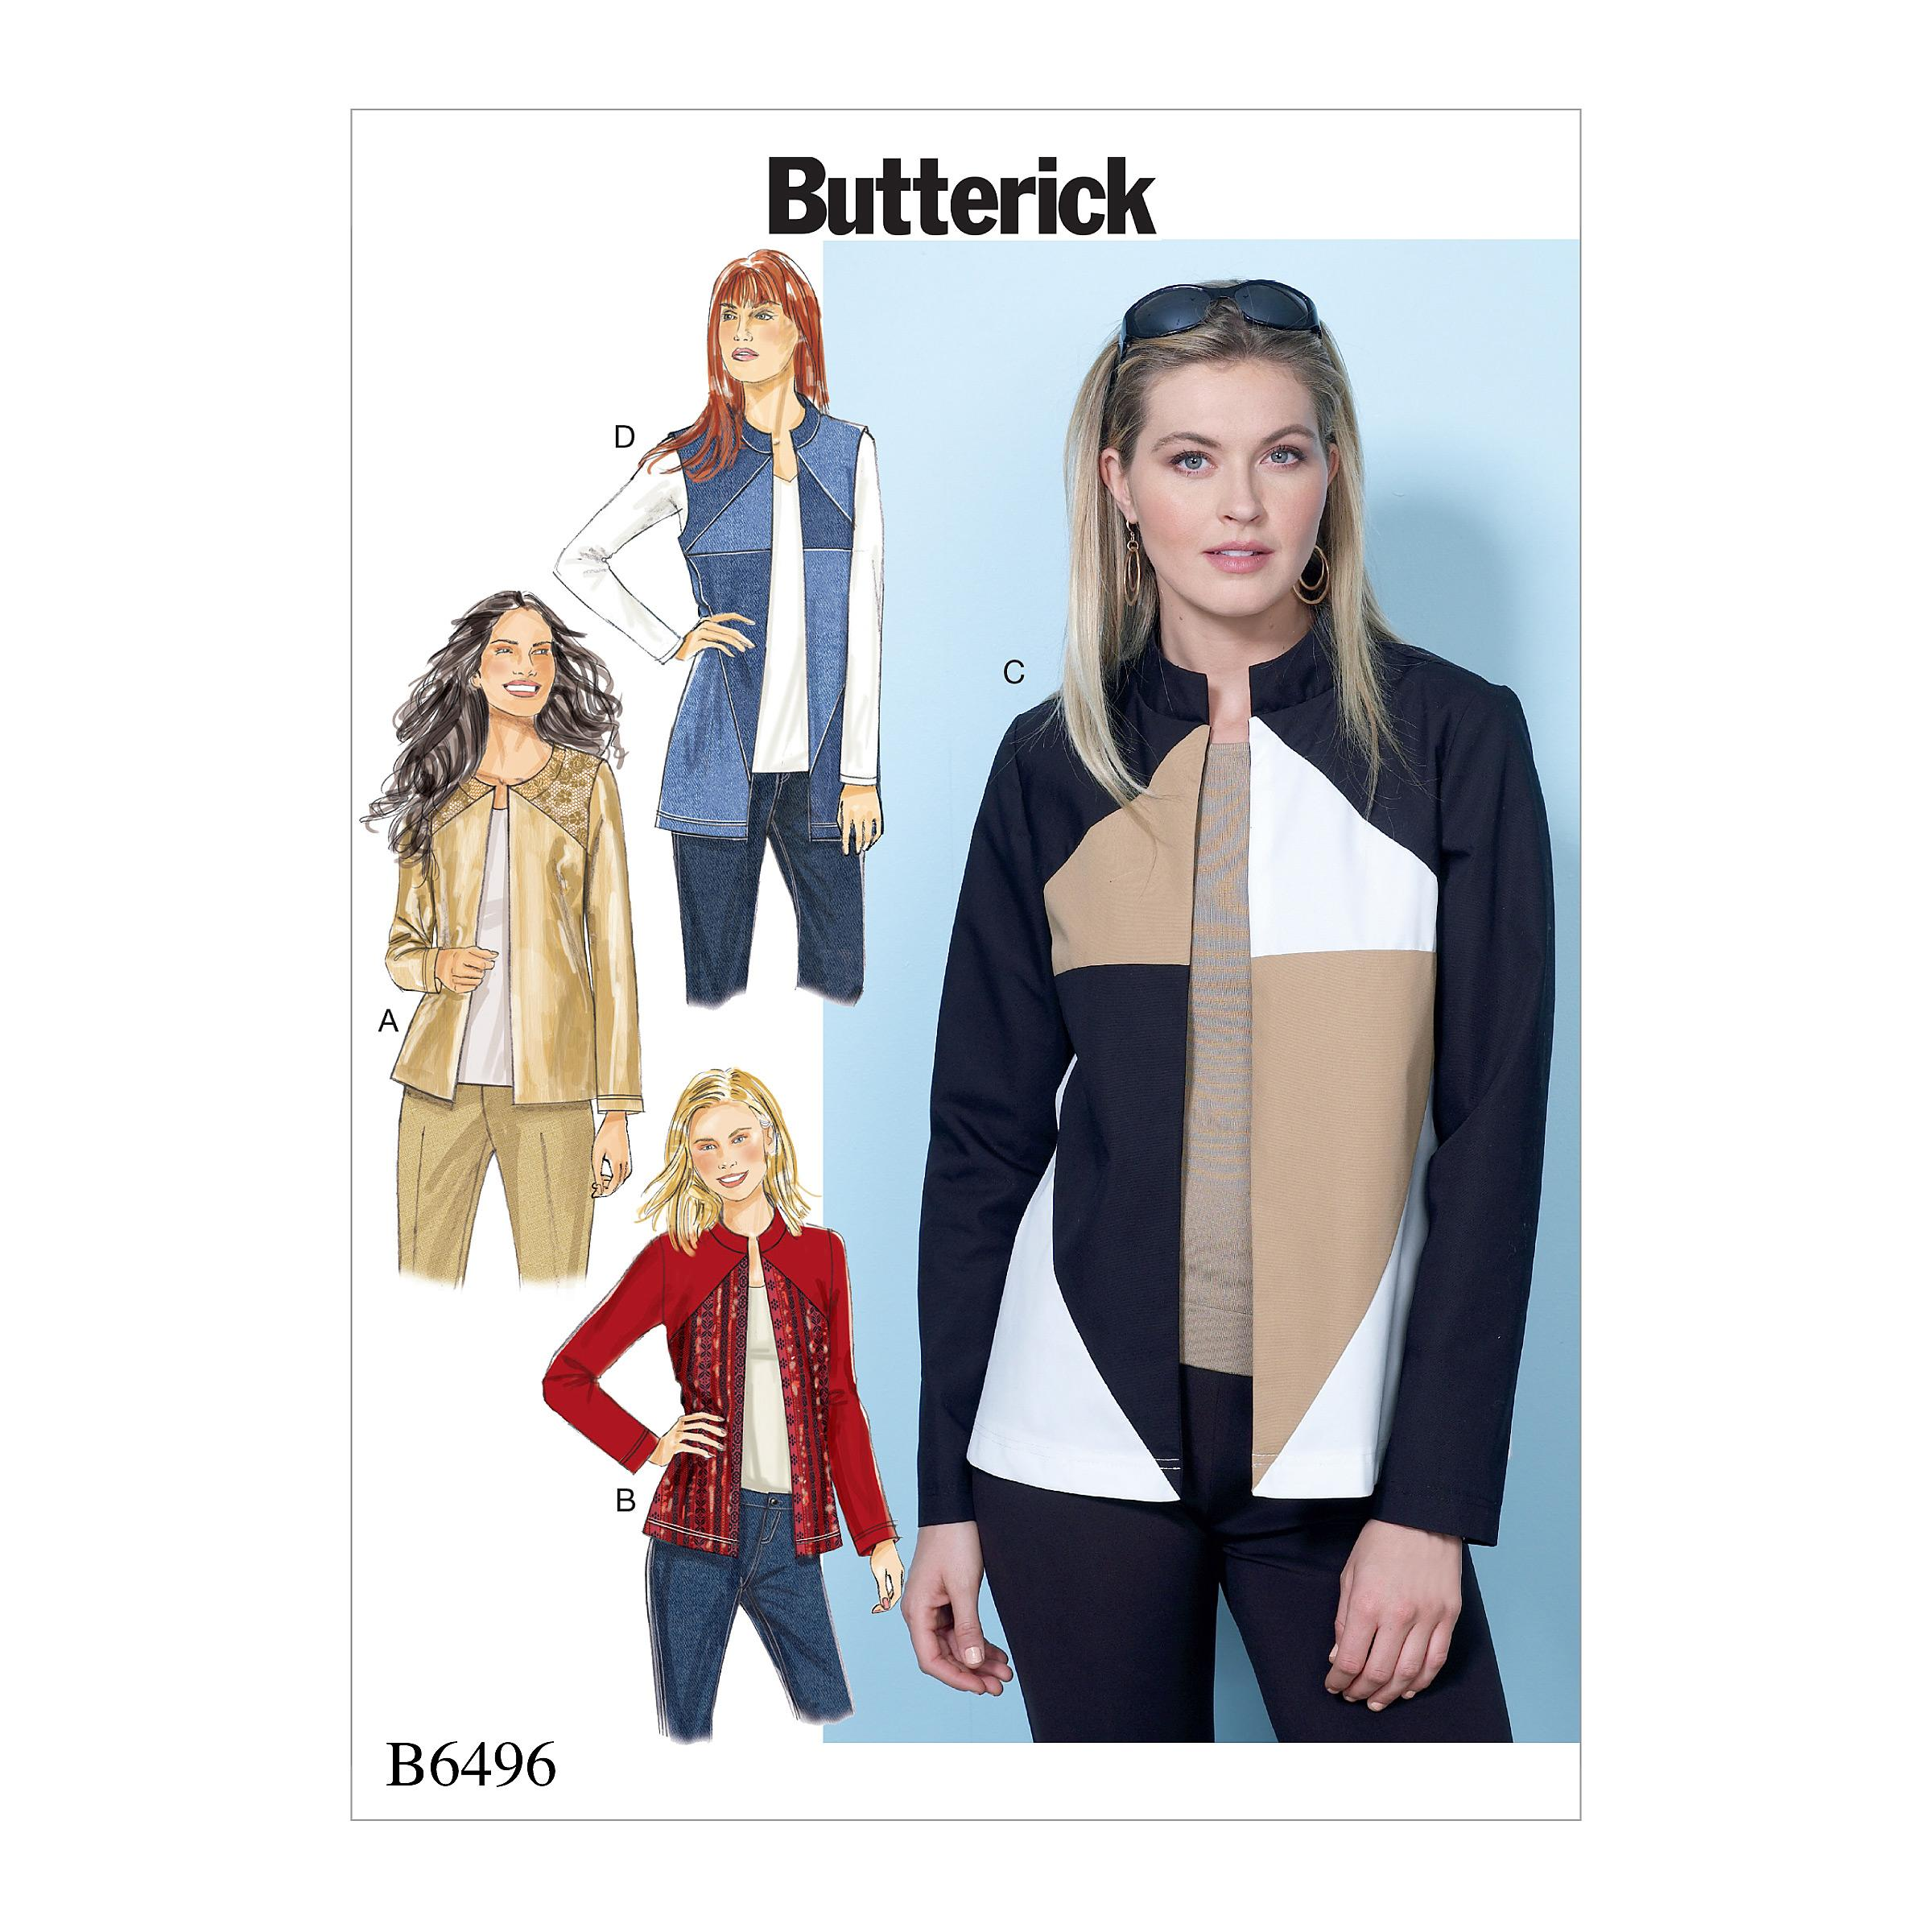 Butterick B6496 Misses' Jackets and Vests with Contrast and Seam Variations